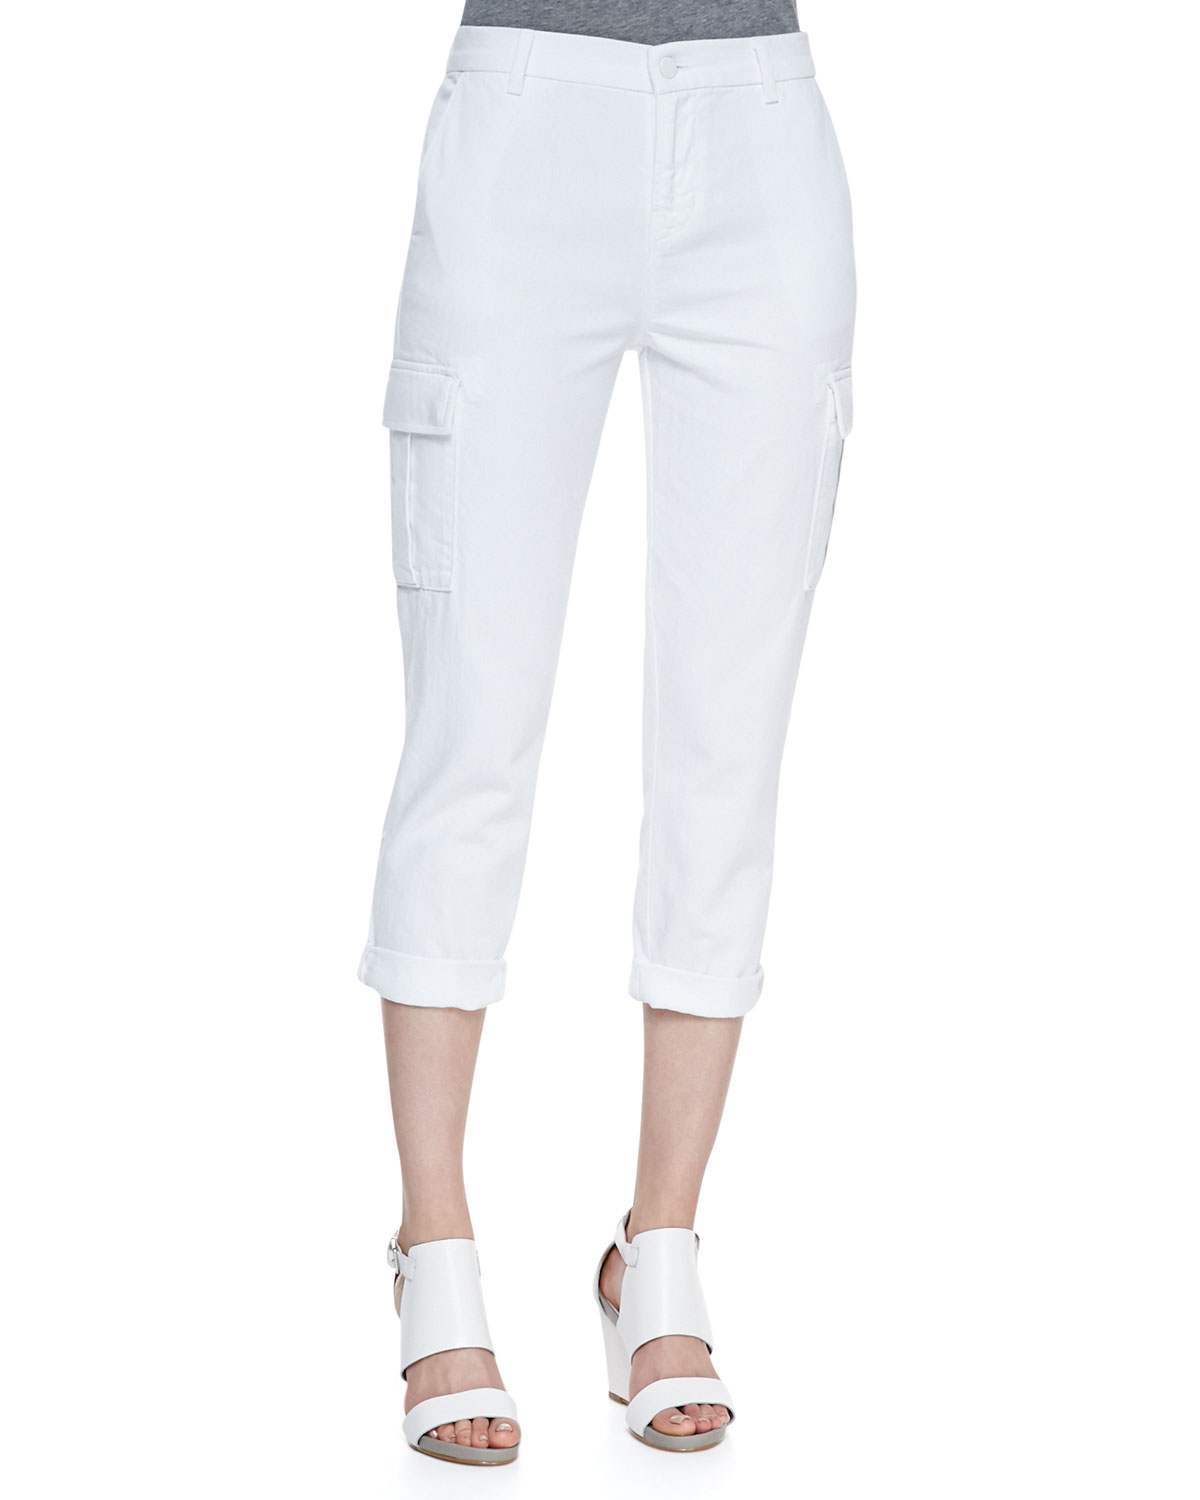 Find great deals on eBay for white cargo pants for men. Shop with confidence.